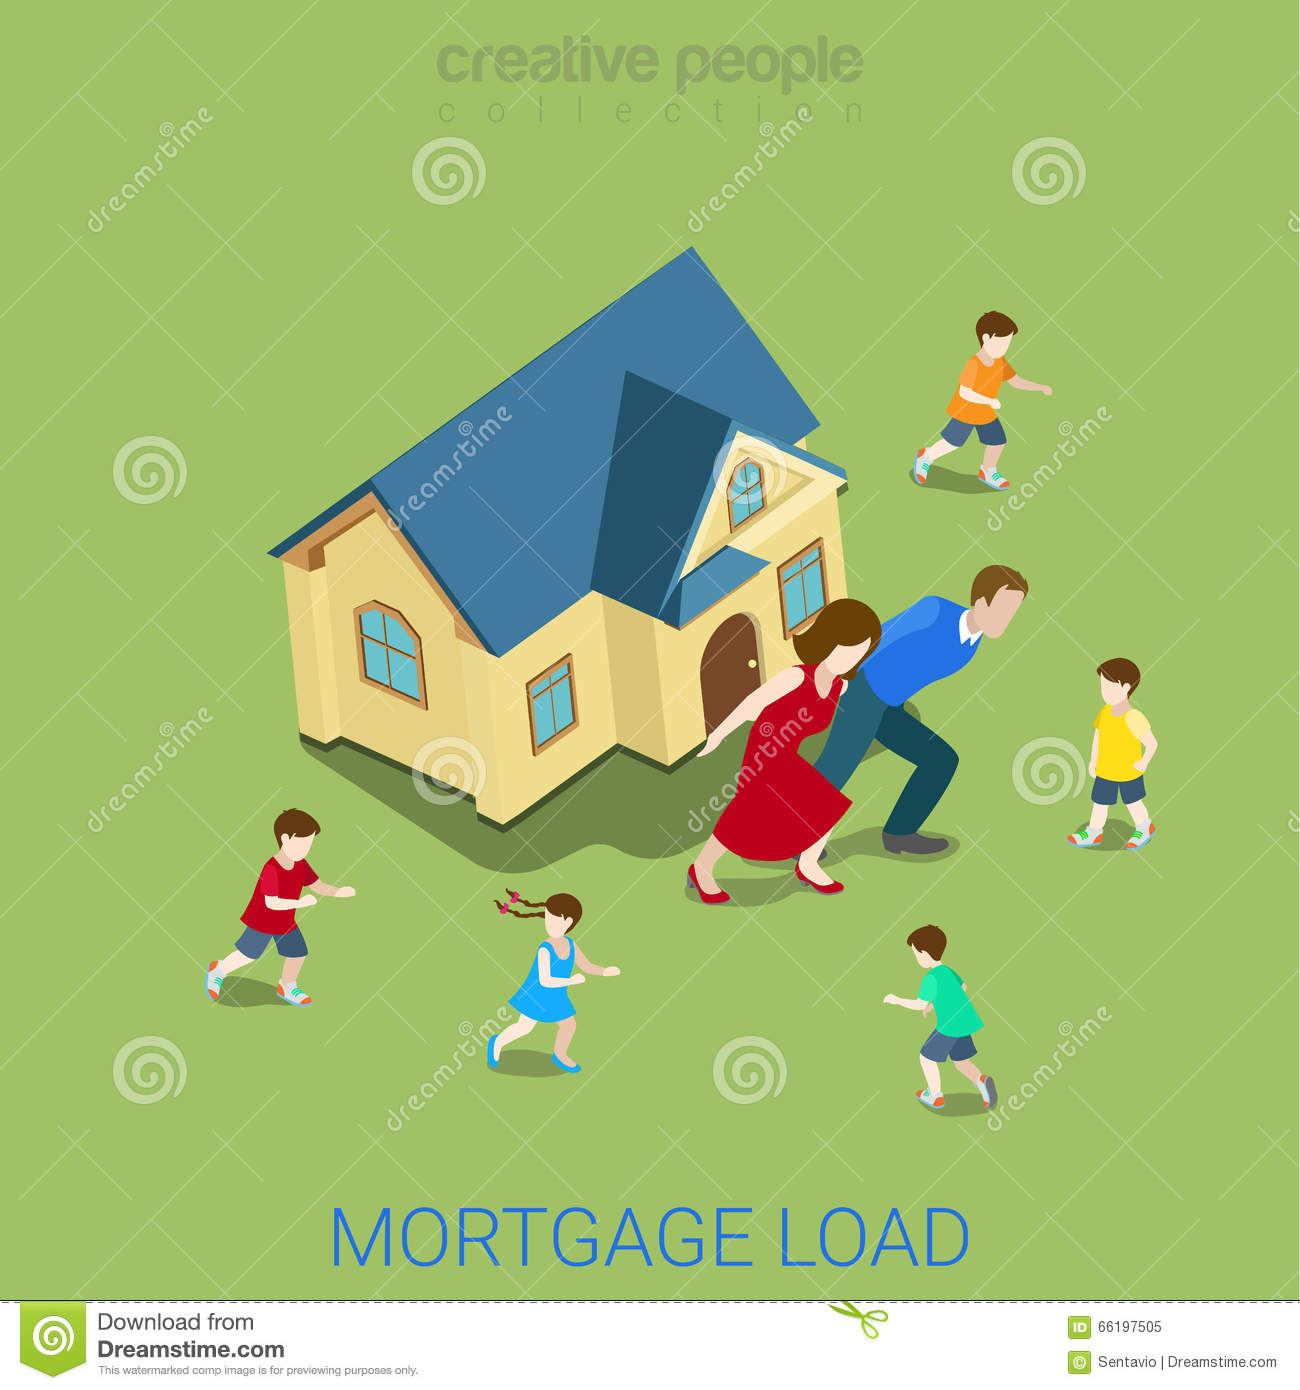 Mortgage Load Loan Burden Family House Flat 3d Vector Isometric